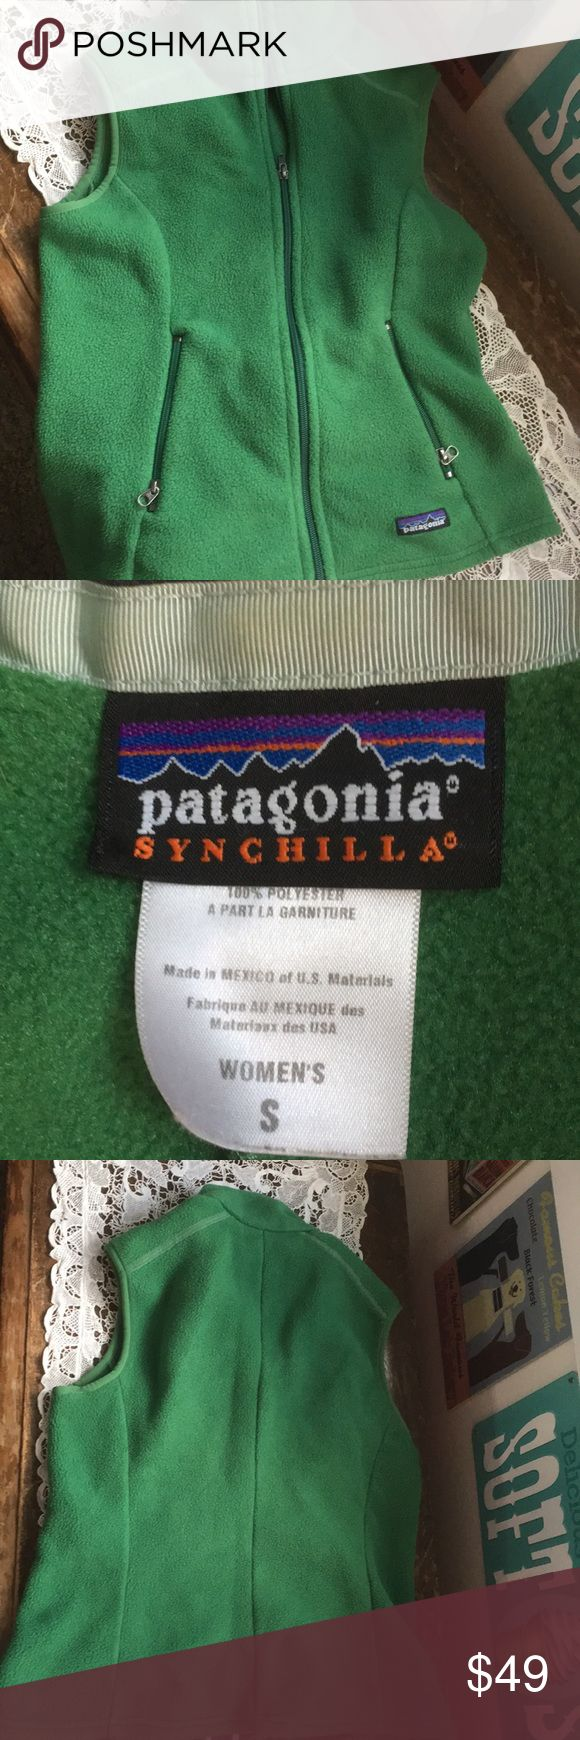 Patagonia fleece vest Kelly green slightly fitted vest .. excellent condition size small Patagonia Jackets & Coats Vests